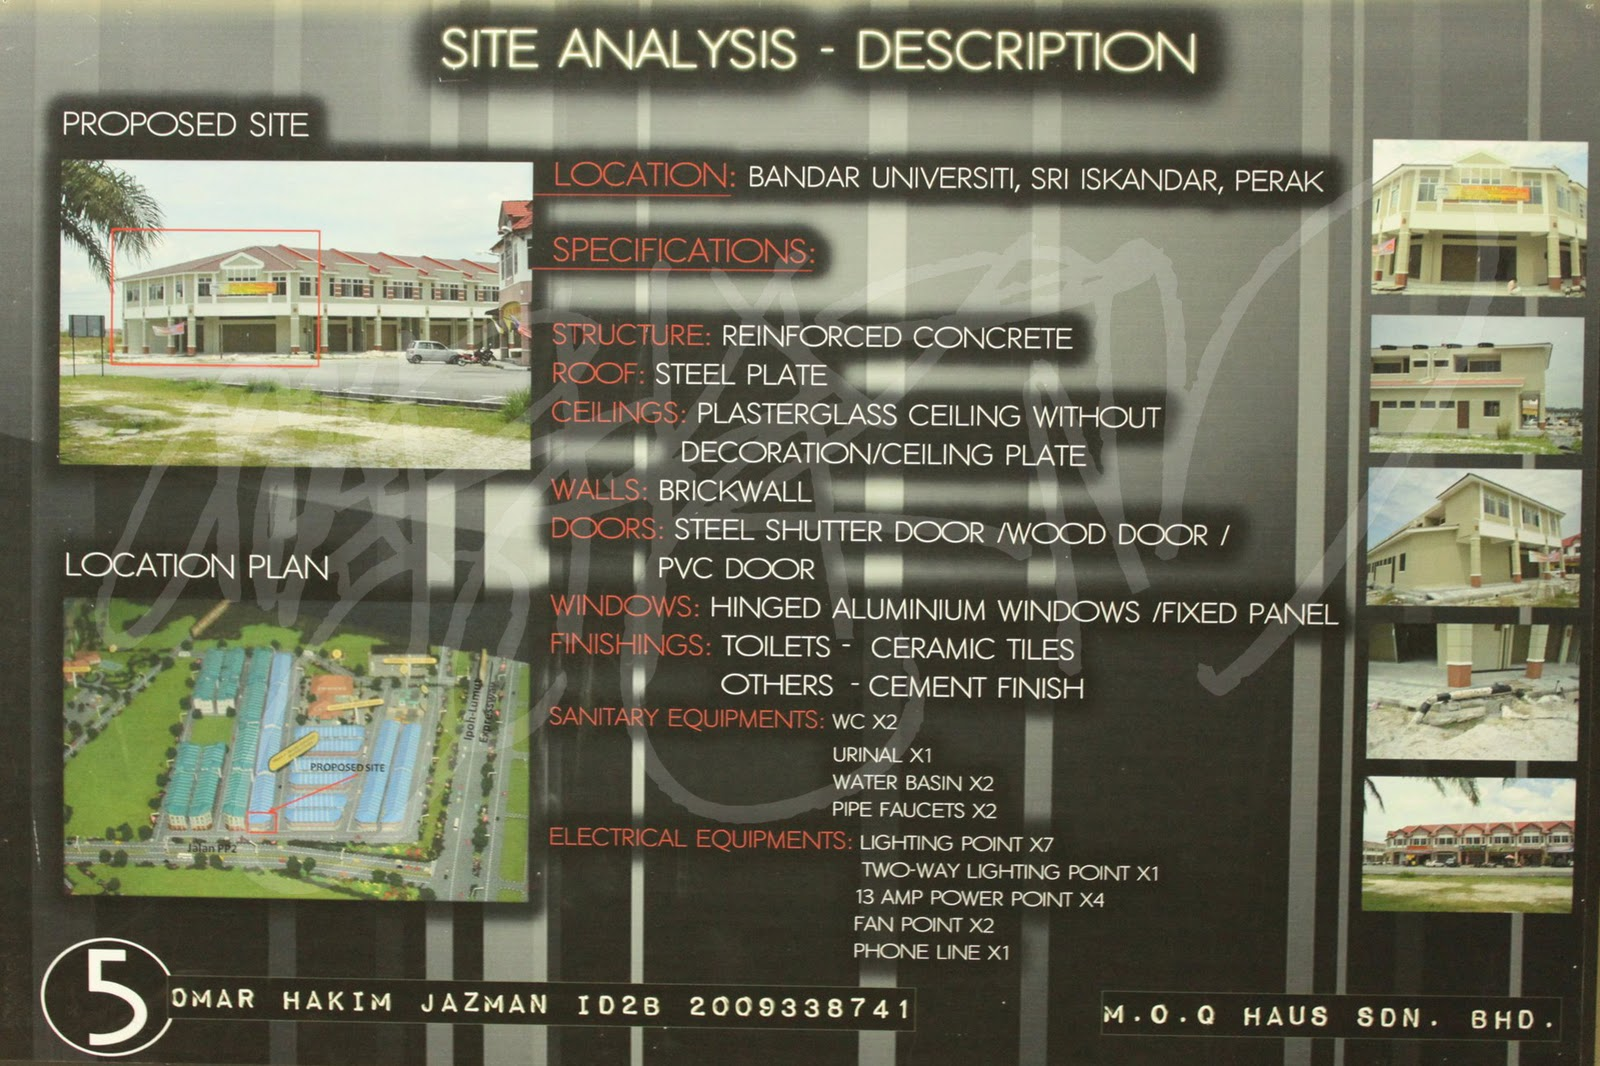 Here Are My Site Analysis Review Which I Have Compressed It To Board 1 Details Of Specifications